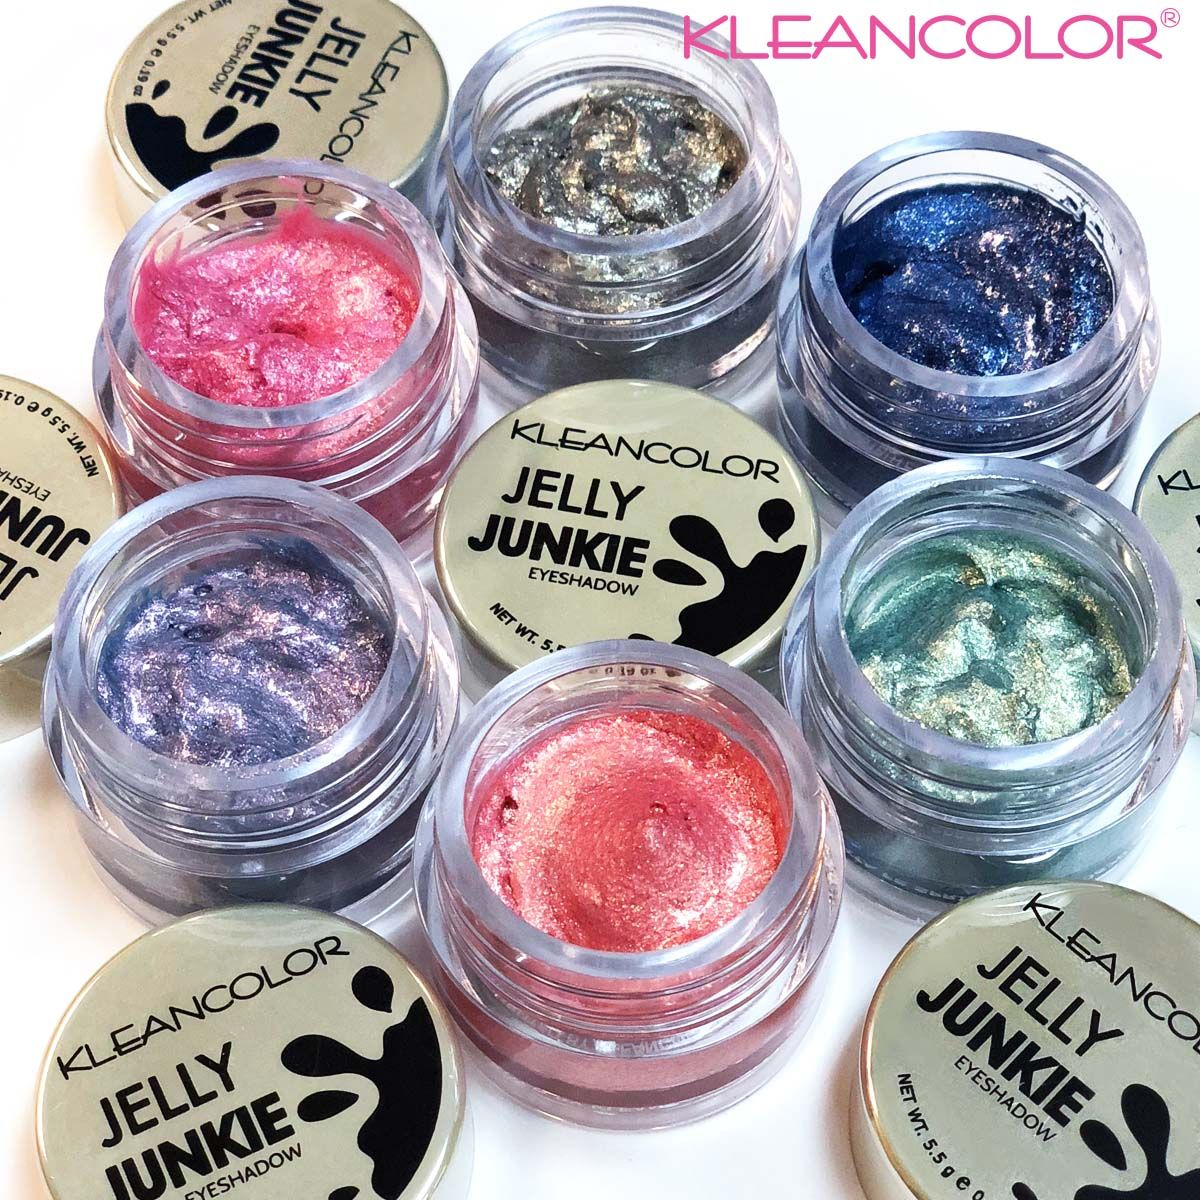 Jelly Junkie eyeshadow has an innovative, boingy jelly-like texture that goes on smooth and dries down to a matte feel.jpeg